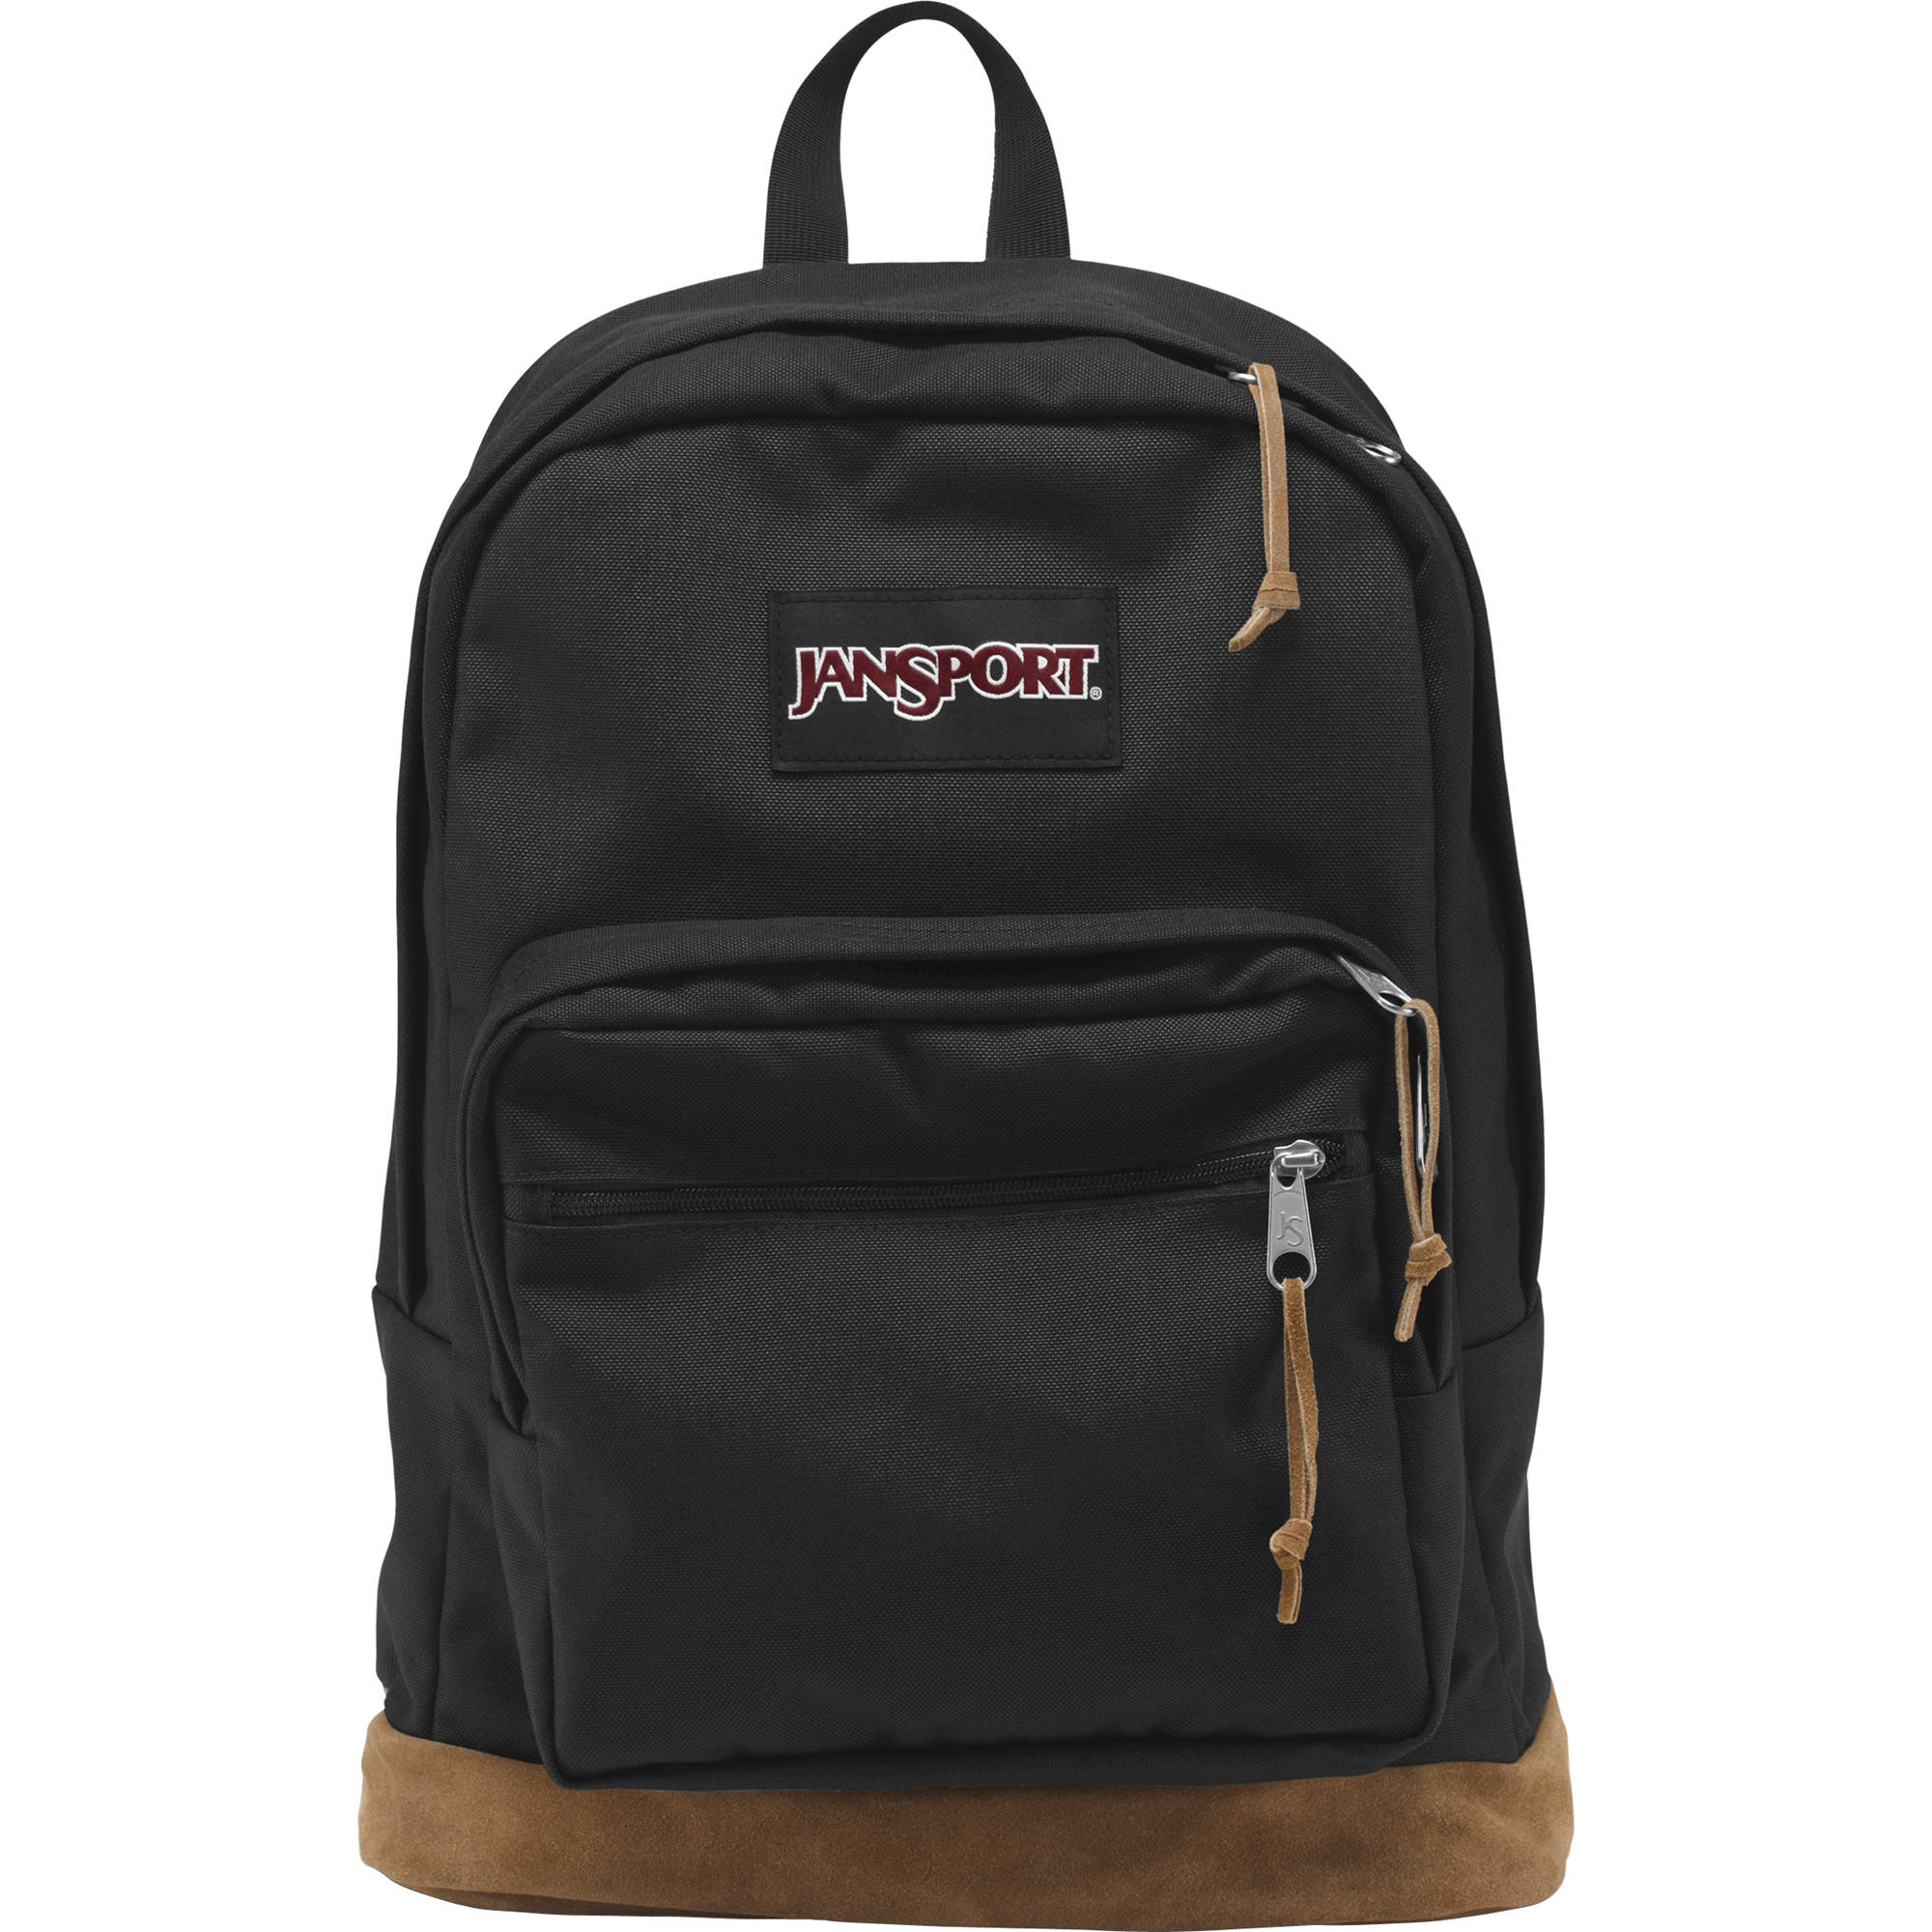 jansport right pack backpack black typ7008 bamph photo video